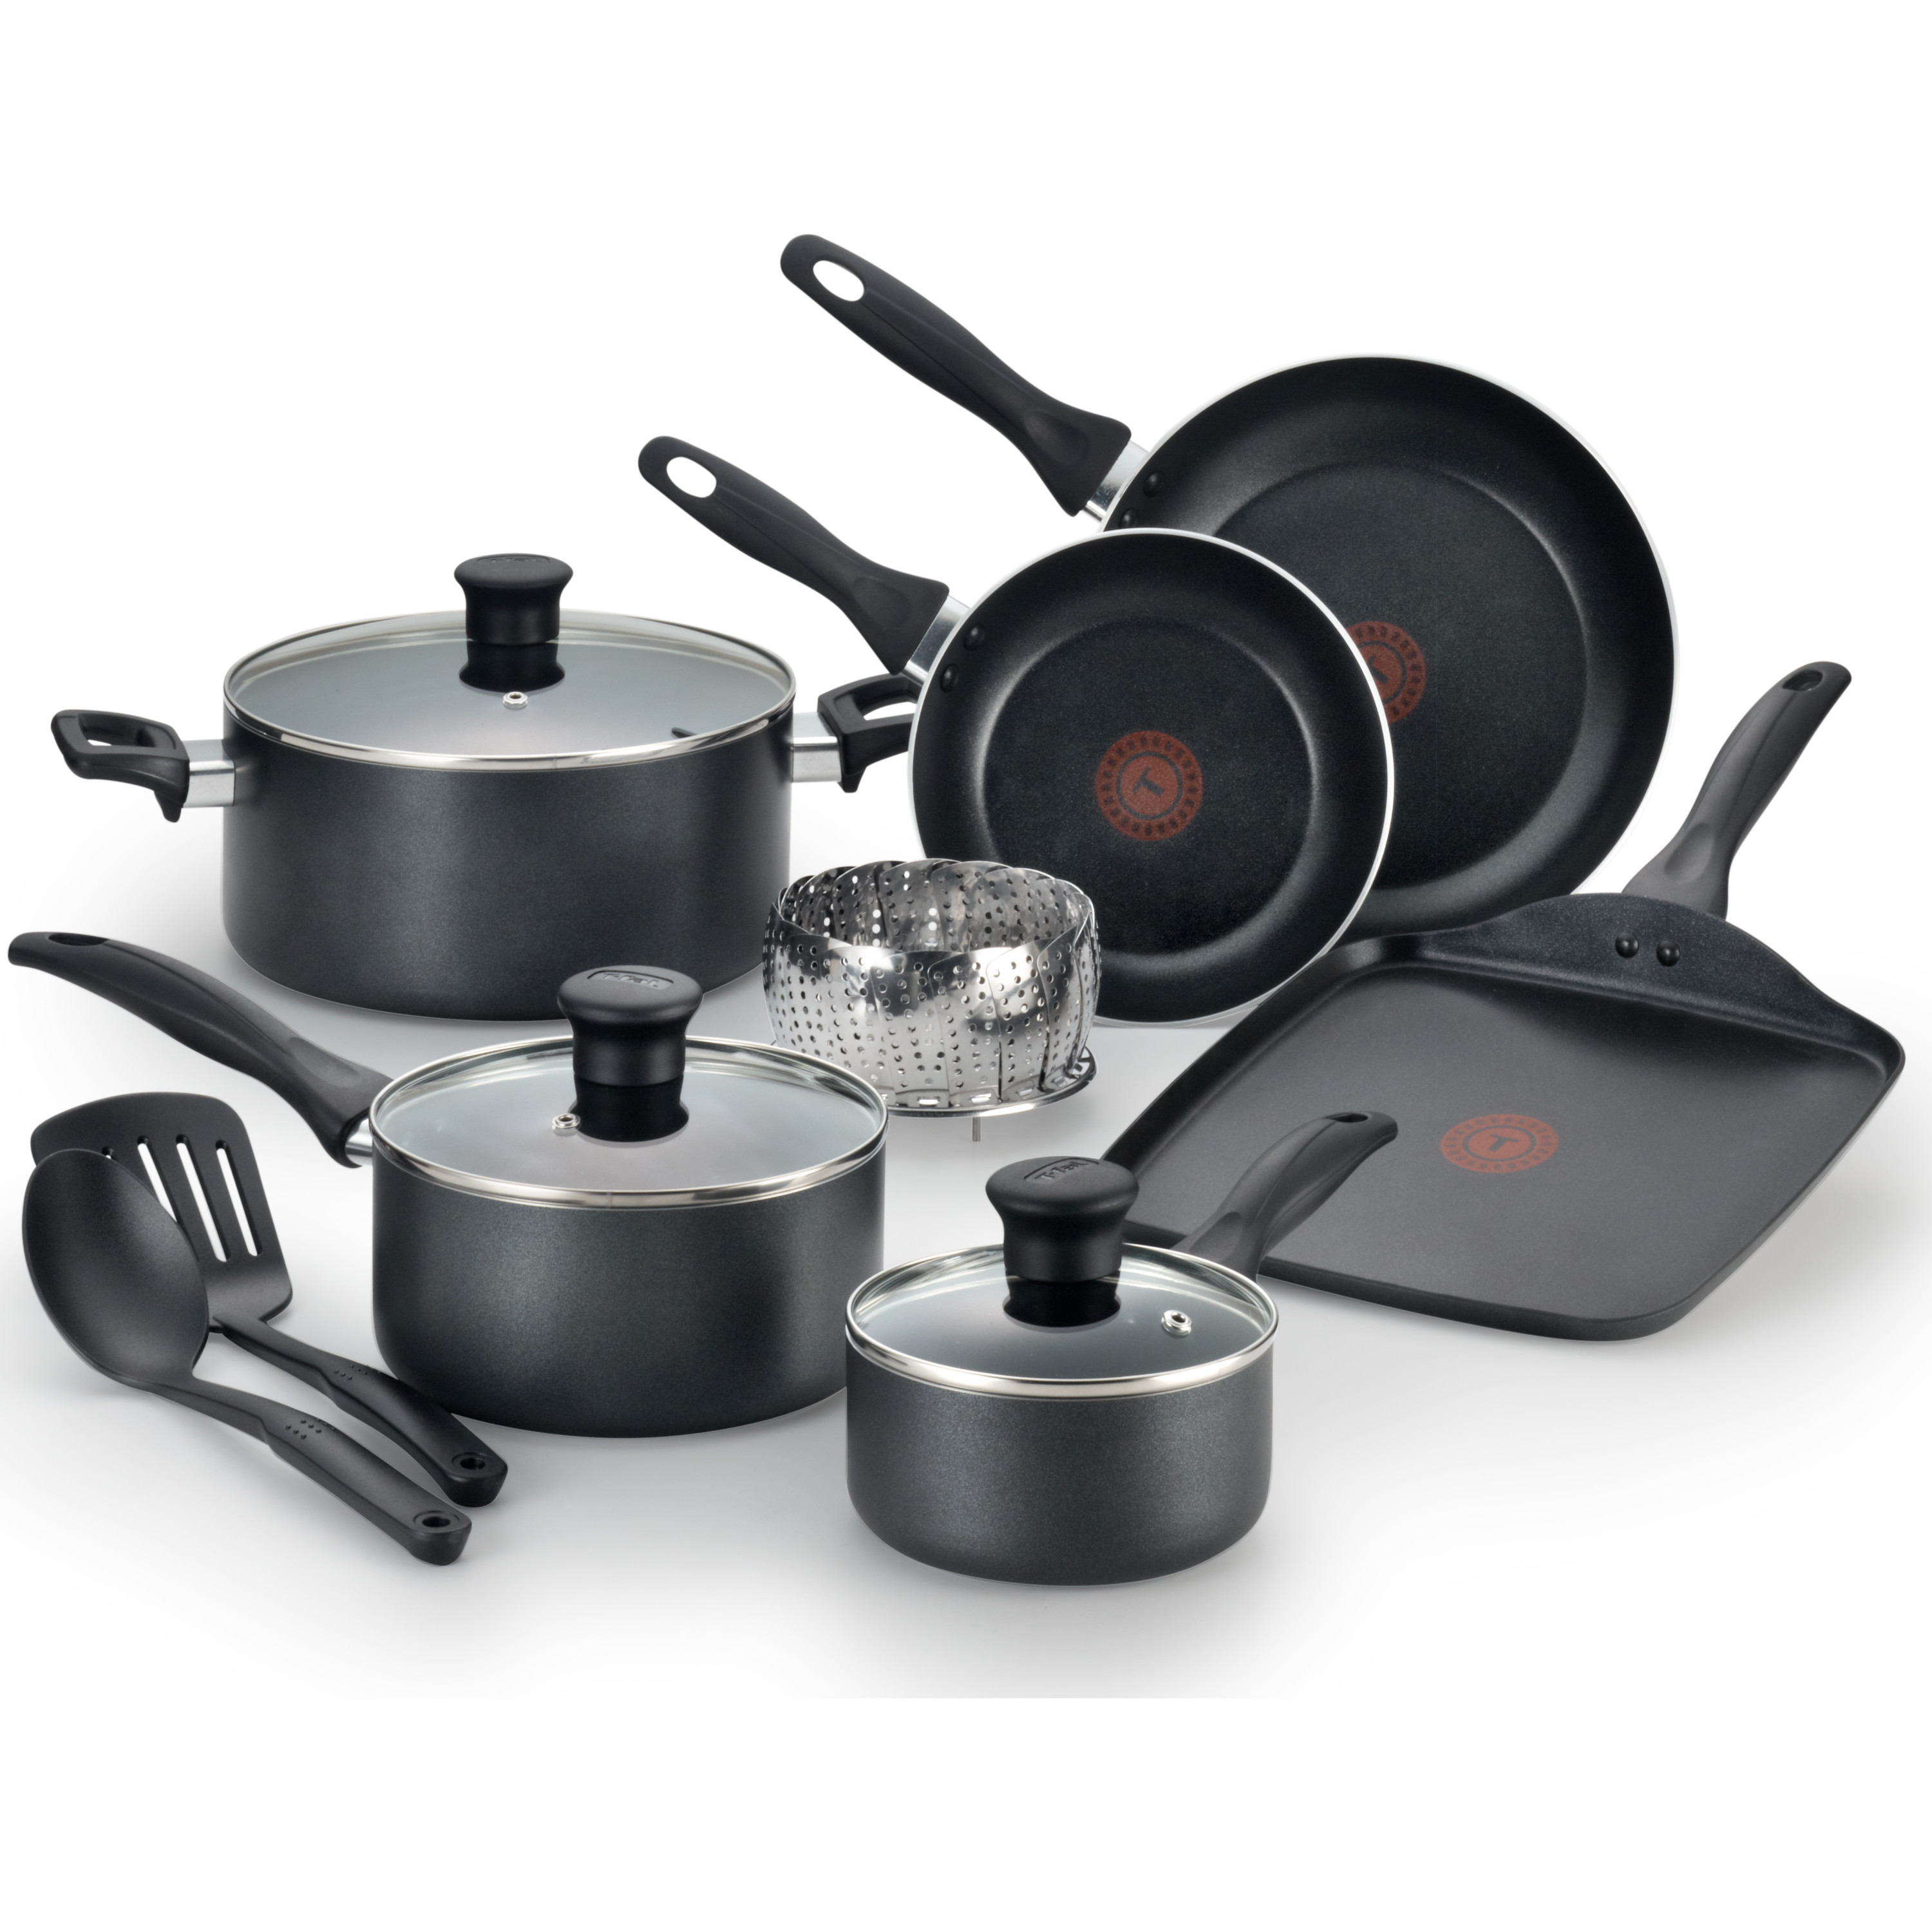 T-fal, Easy Care Nonstick 12 Pc. Cookware Set, Thermo-Spot, Dishwasher Safe, Black,...